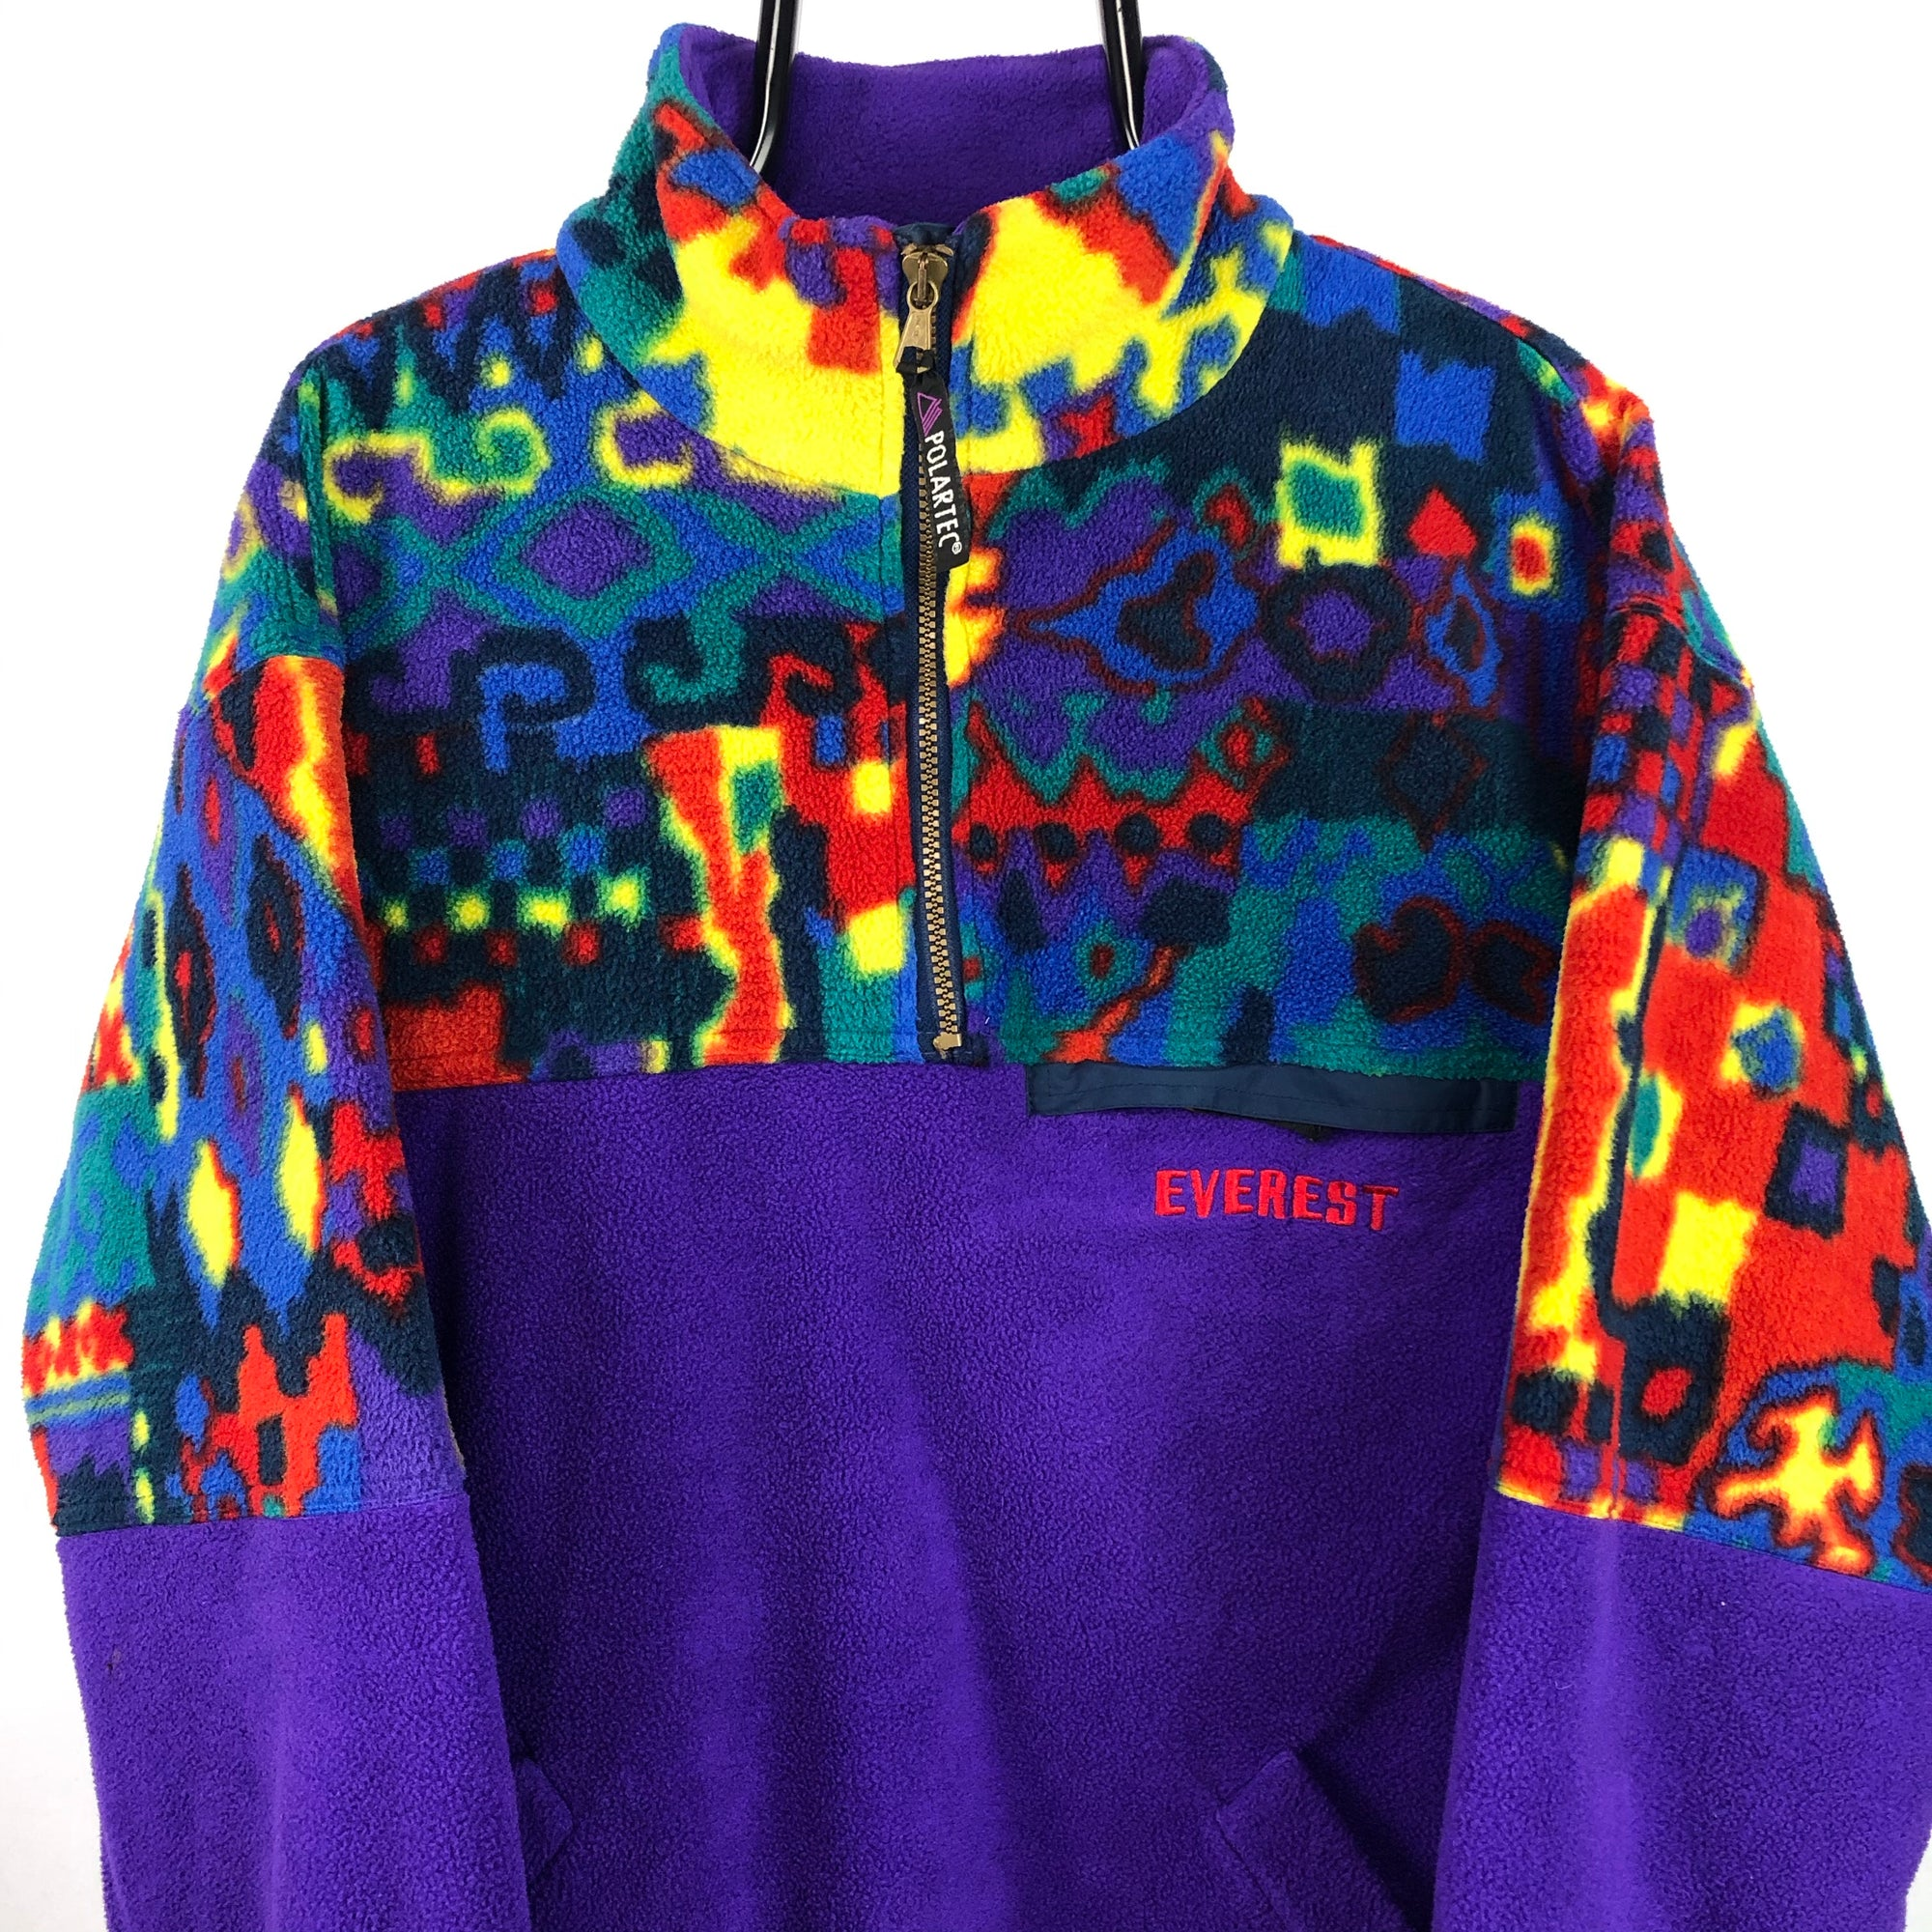 Vintage Crazy Print Polartec Fleece - Men's Medium/Women's Large